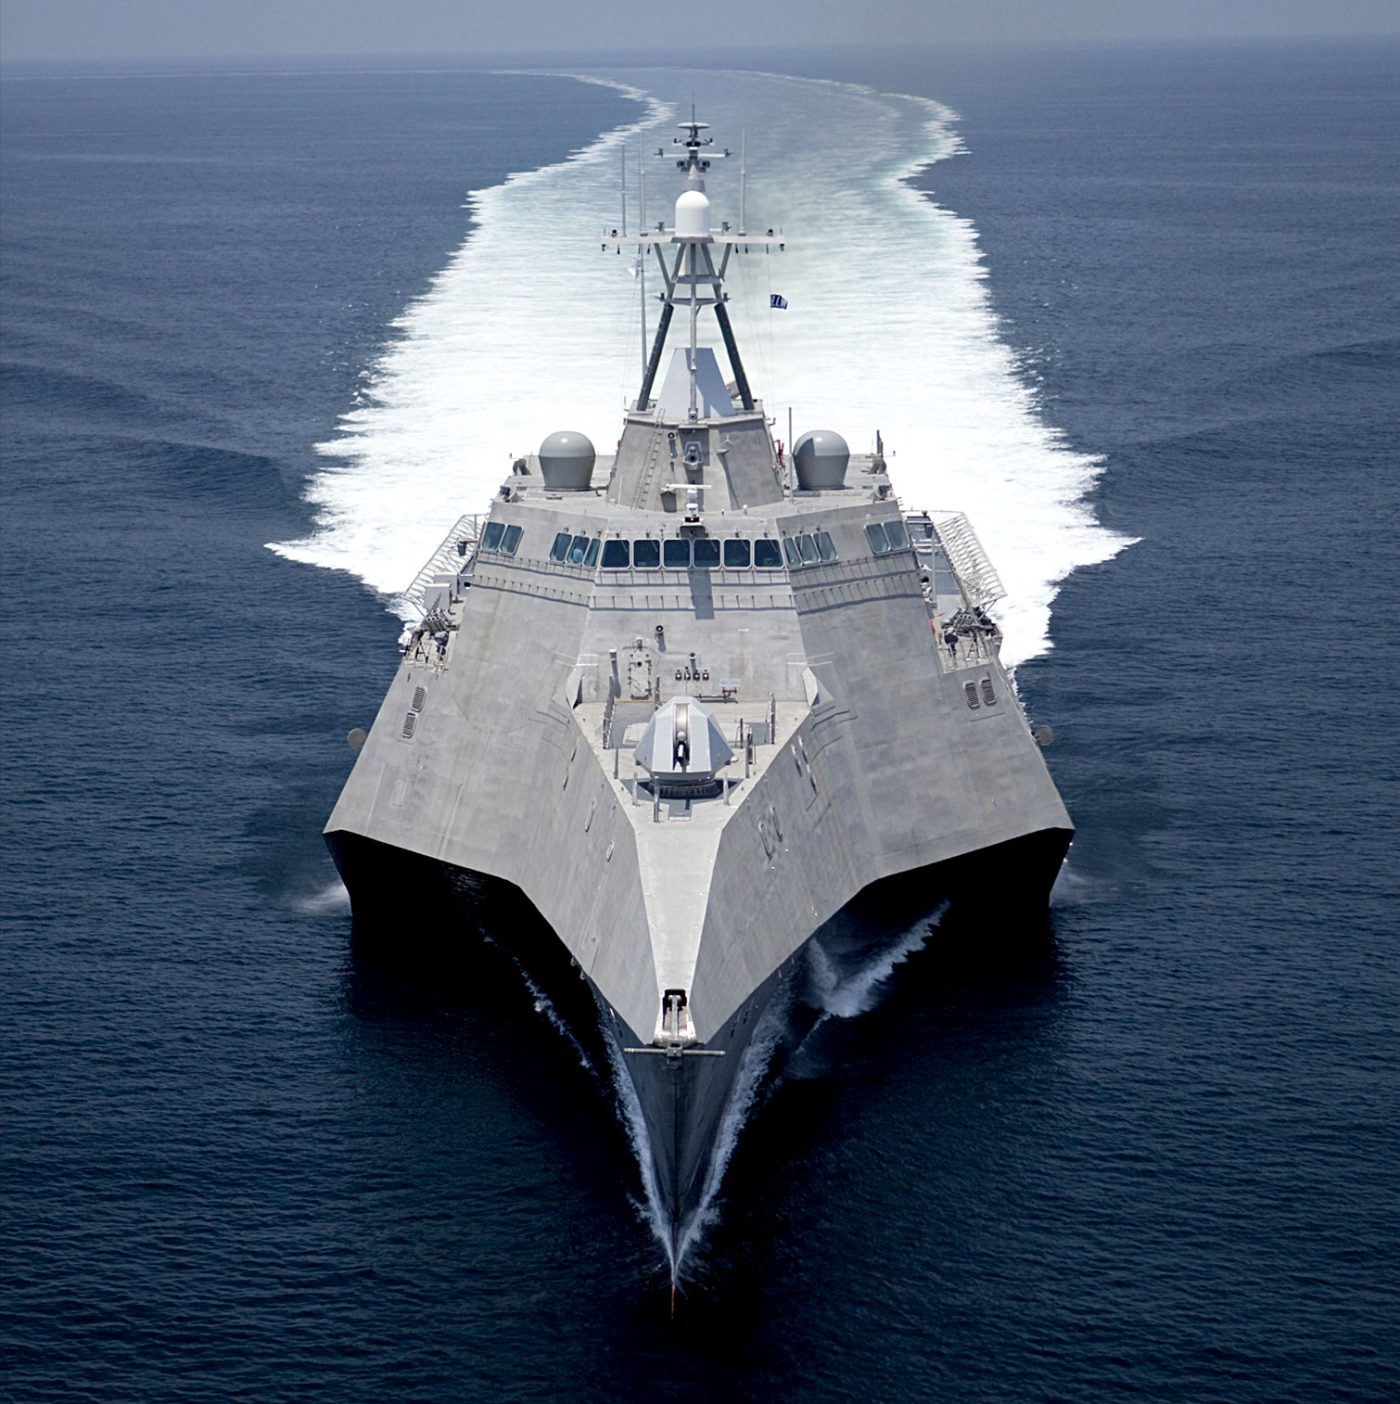 LCS2 Independence